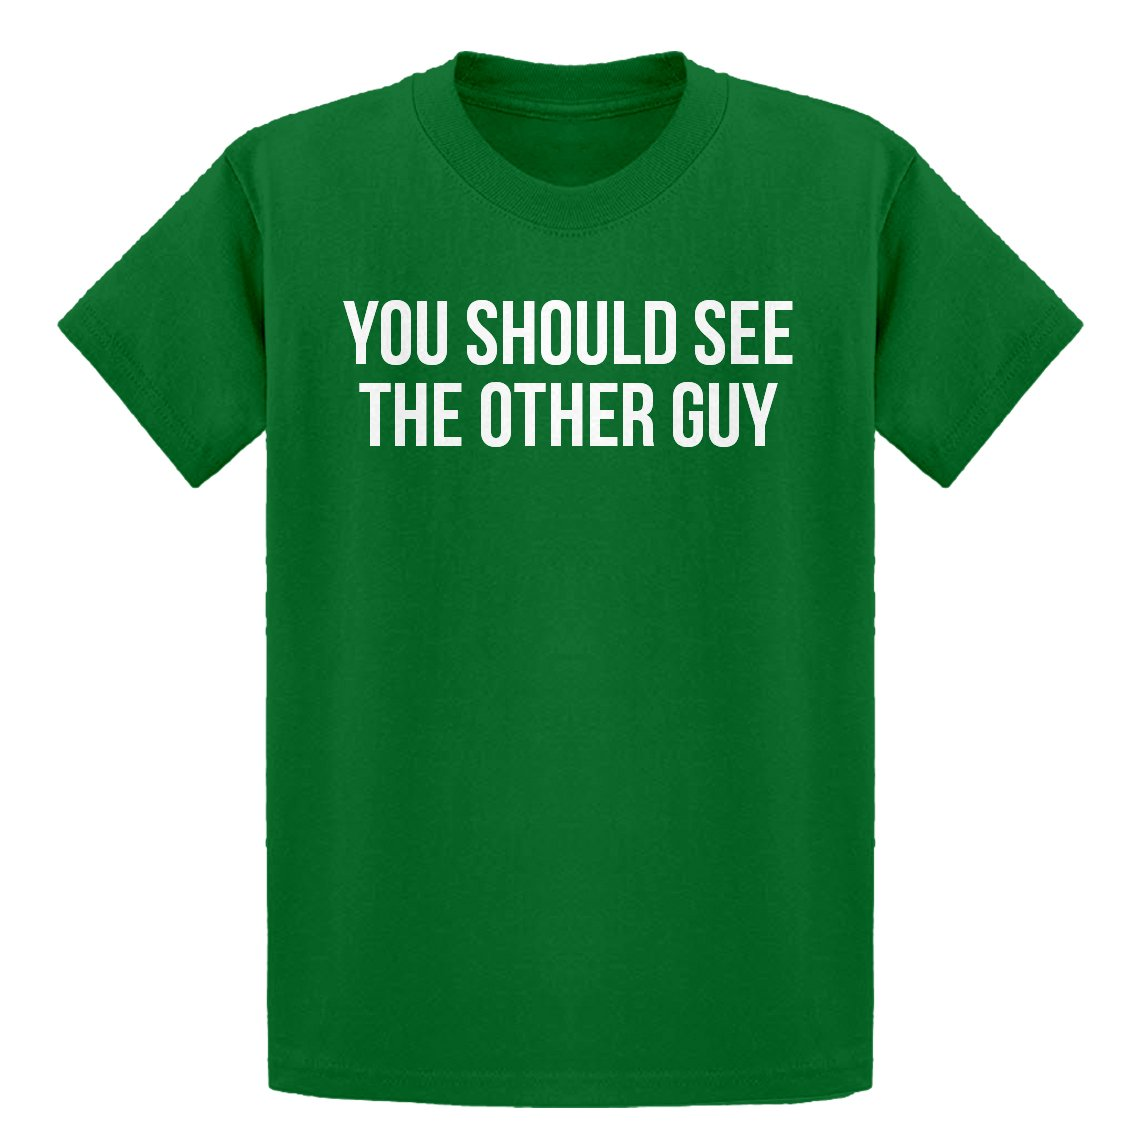 Indica Plateau You Should See The Other Guy Youth T-Shirt 3606-Y